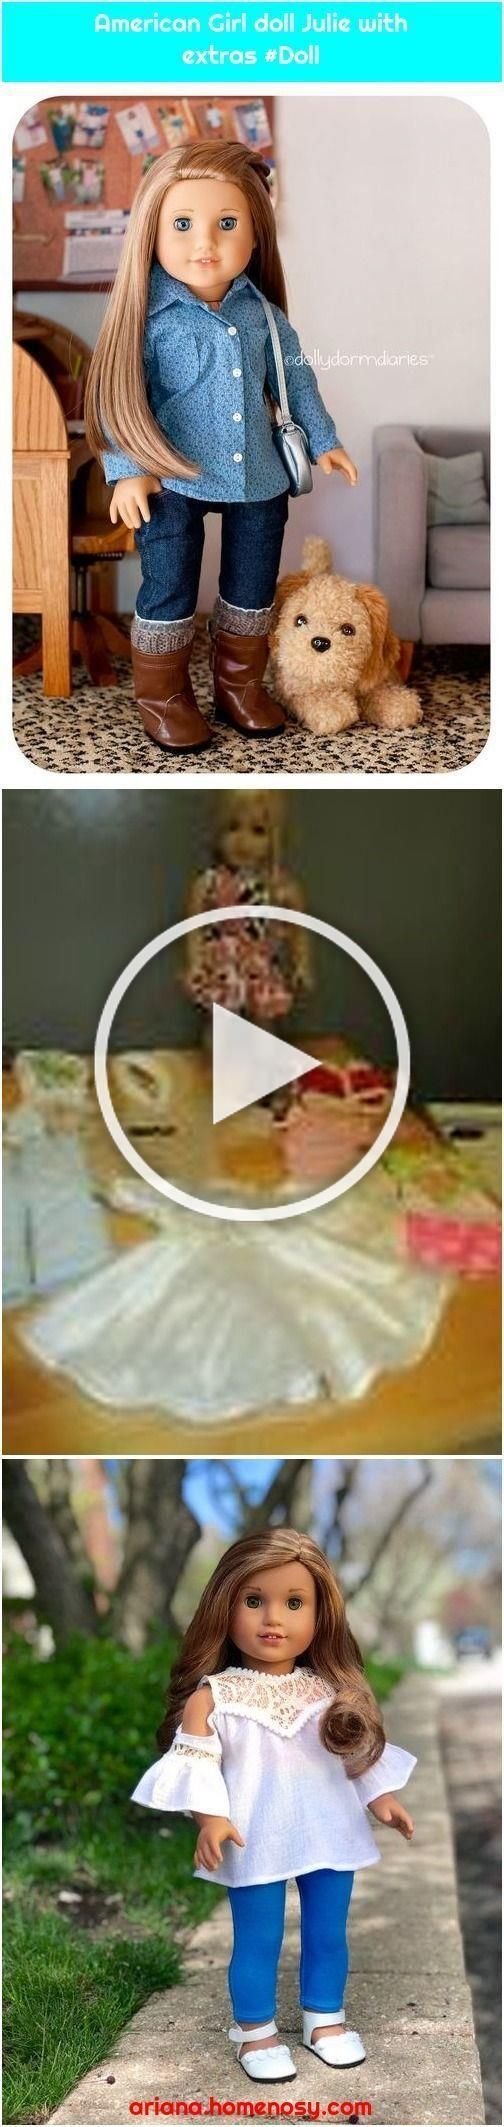 American Girl doll Julie with extras #Doll #americangirlhouse #American #america...